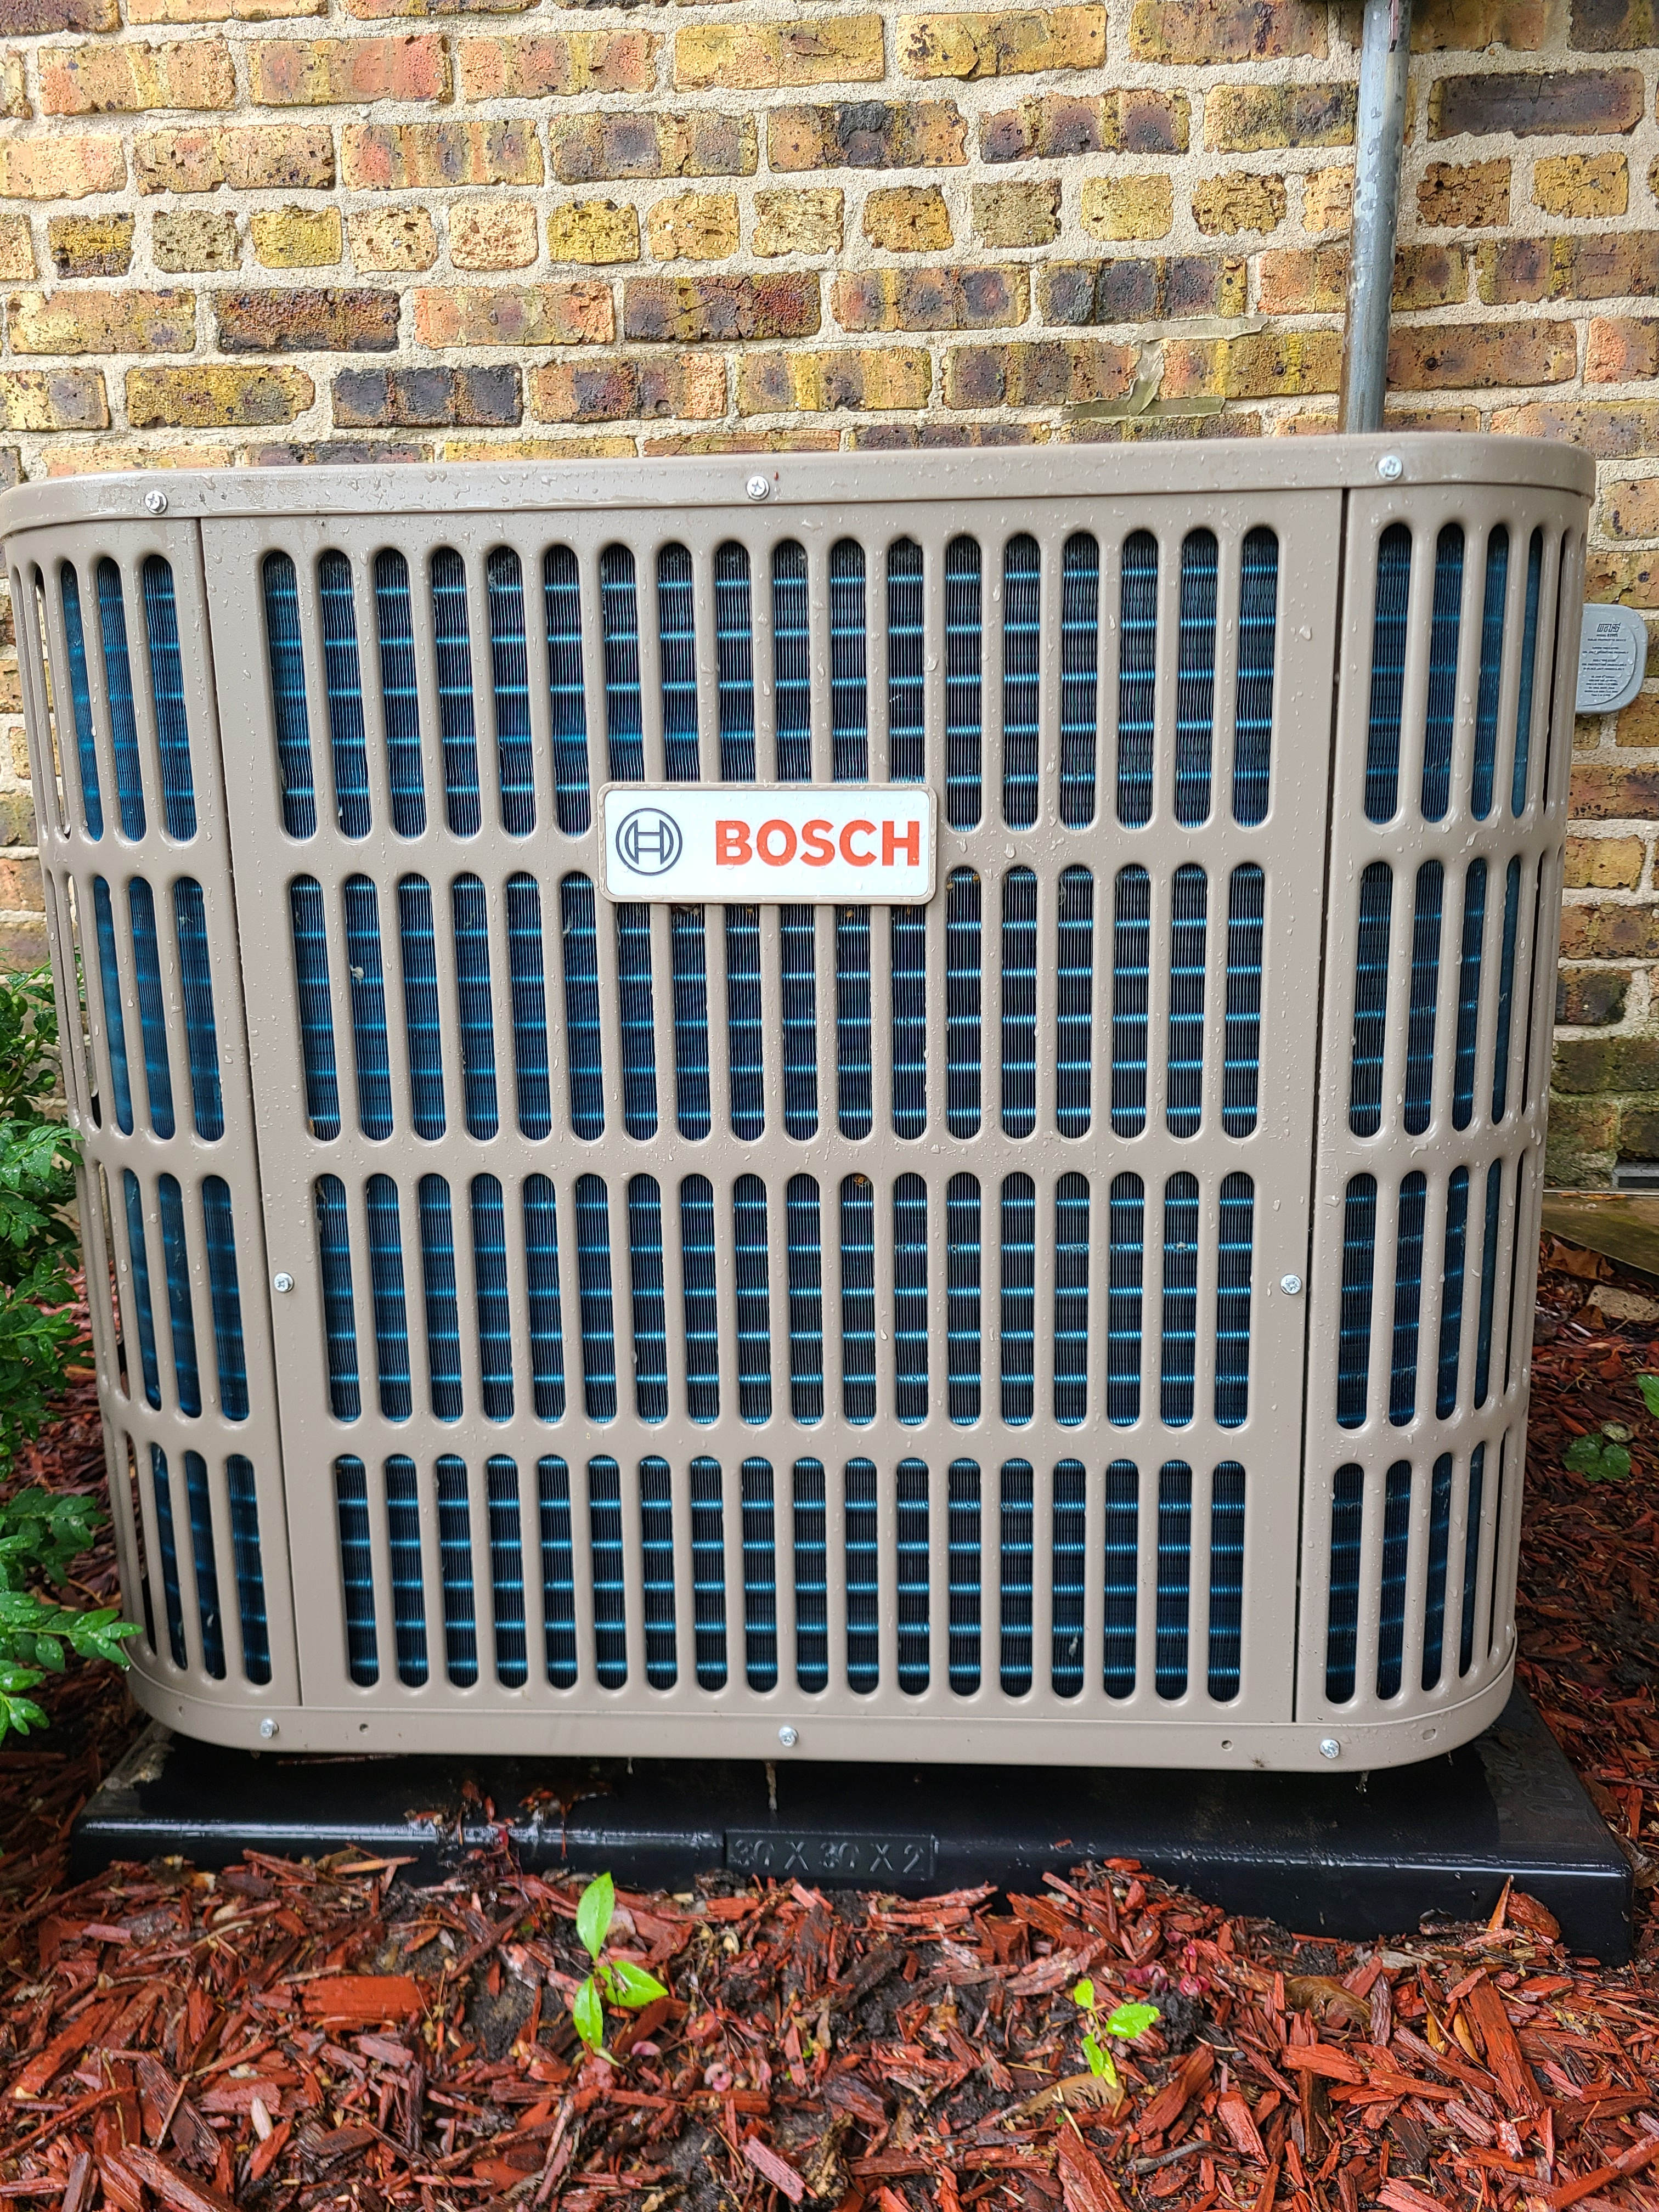 Bosch r410a system cleaned and tested...ready for summer operation